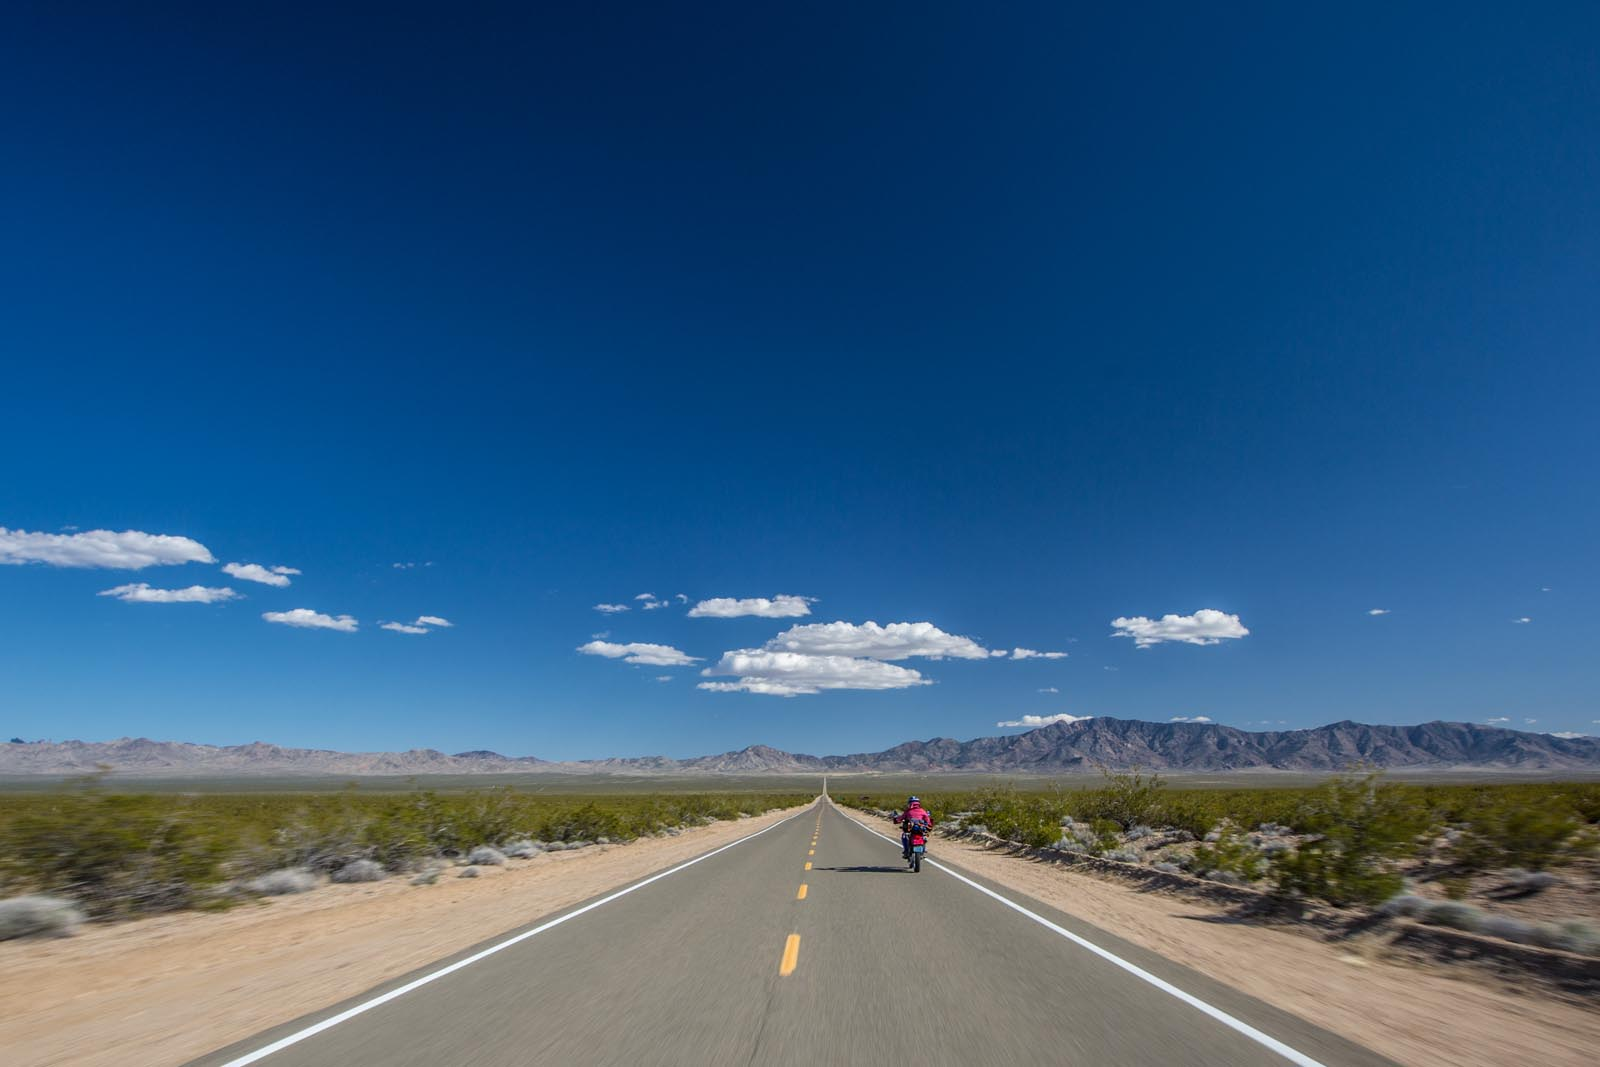 On the Road! Amazing views crossing the Mojave desert.